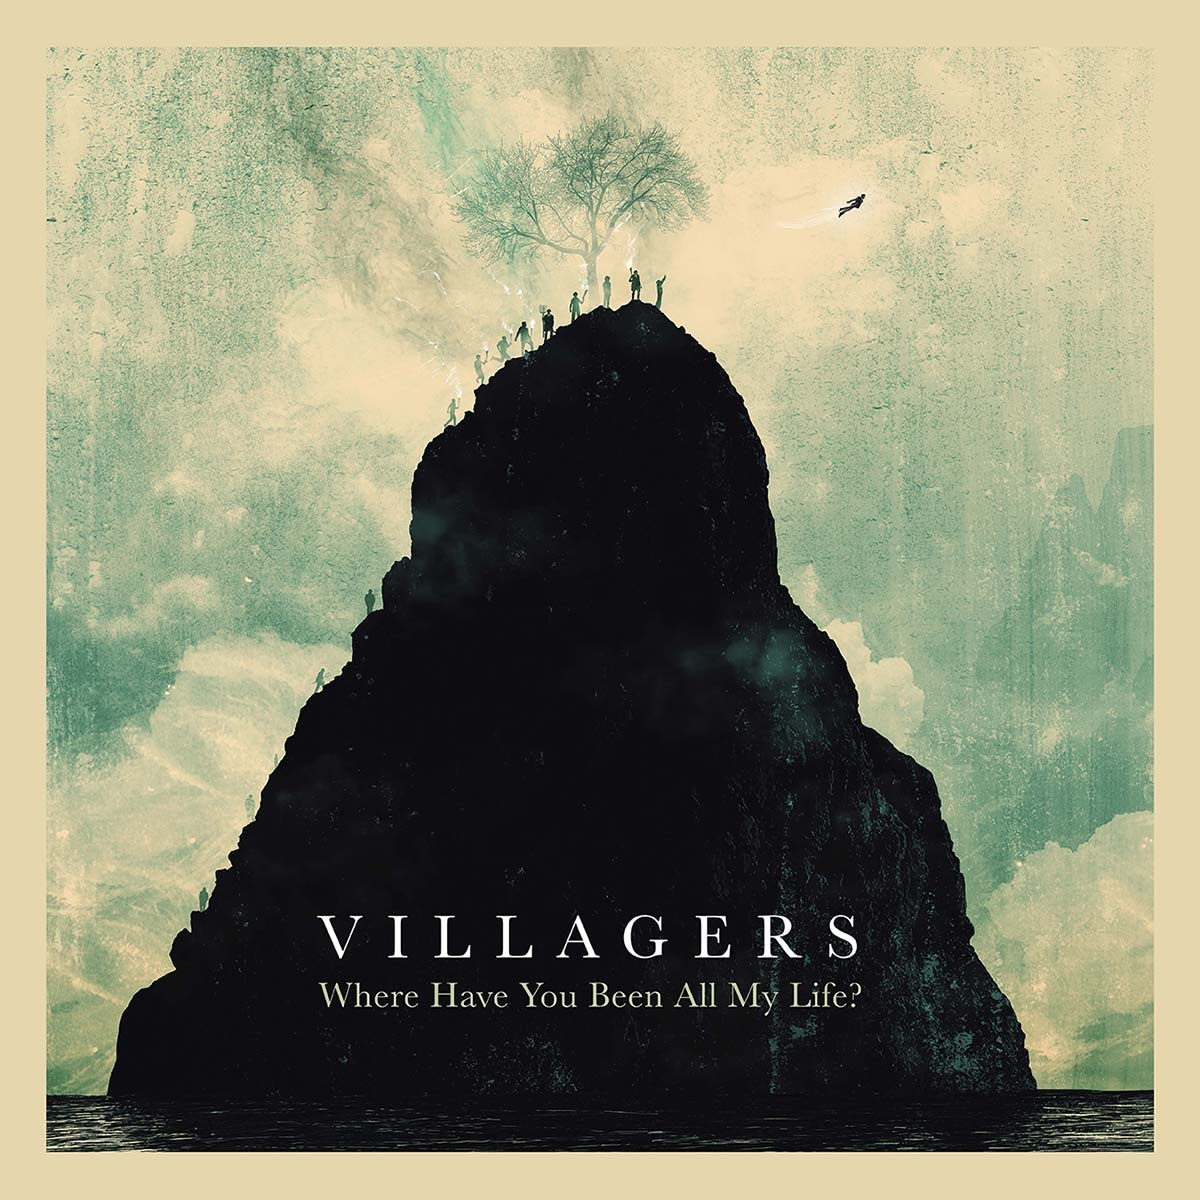 Villagers Where Have You Been All My Life?